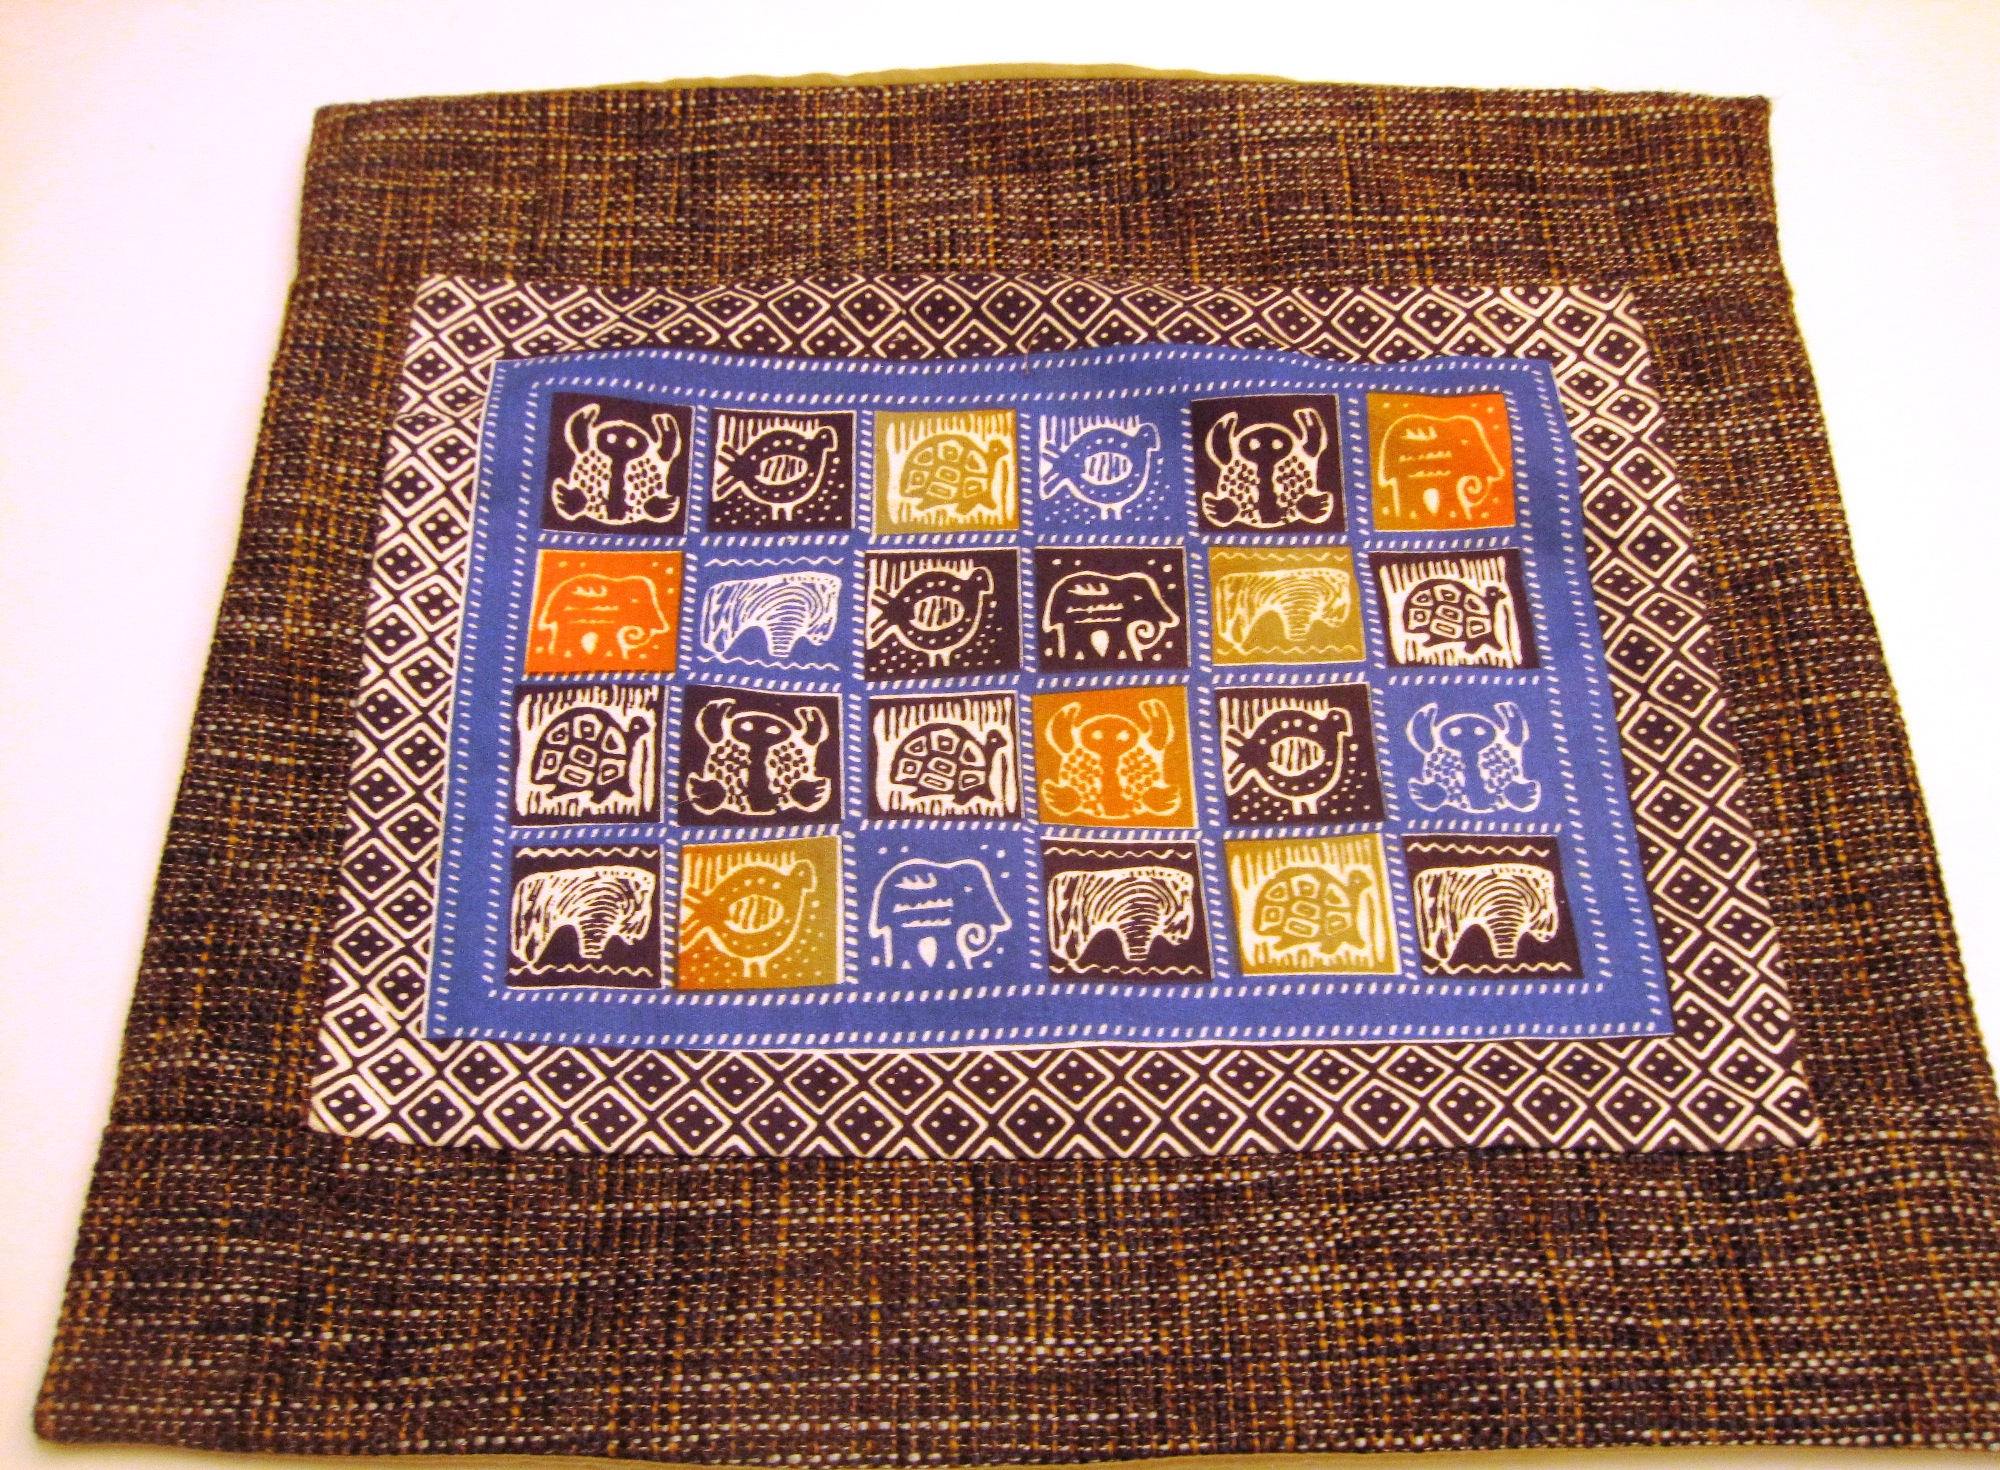 Regional African Cushion Cover #11